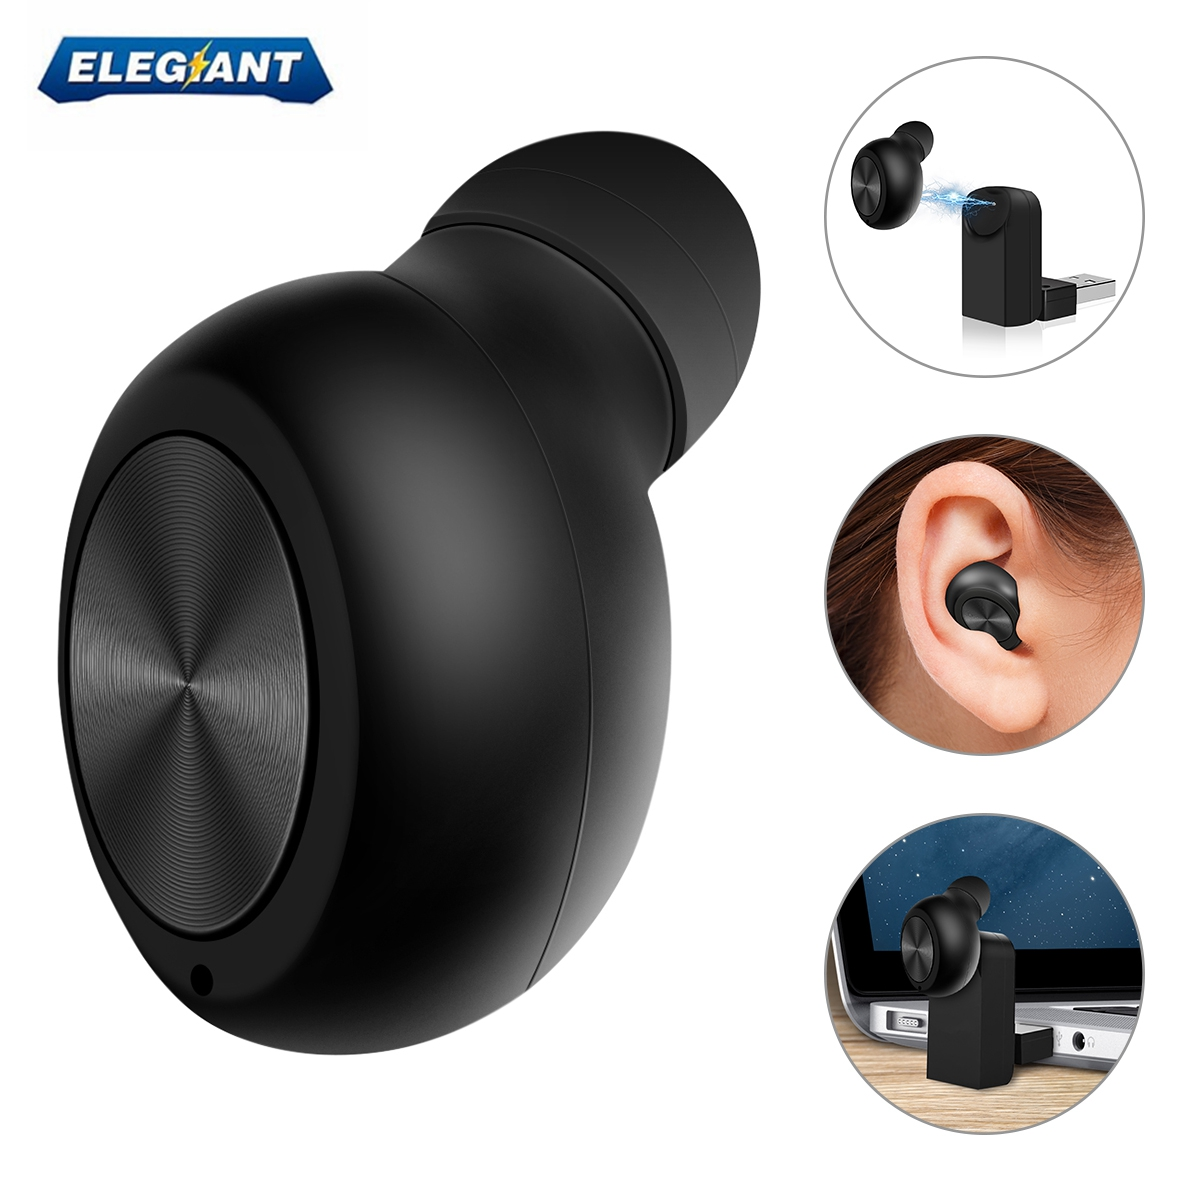 ELEGIANT écouteurs Wireless Earbuds Headphones Magnetic USB Charging Mini In-ear Headset Earbud Earphone Hands-free With Noise Reduction Built-in Mic for Office Business